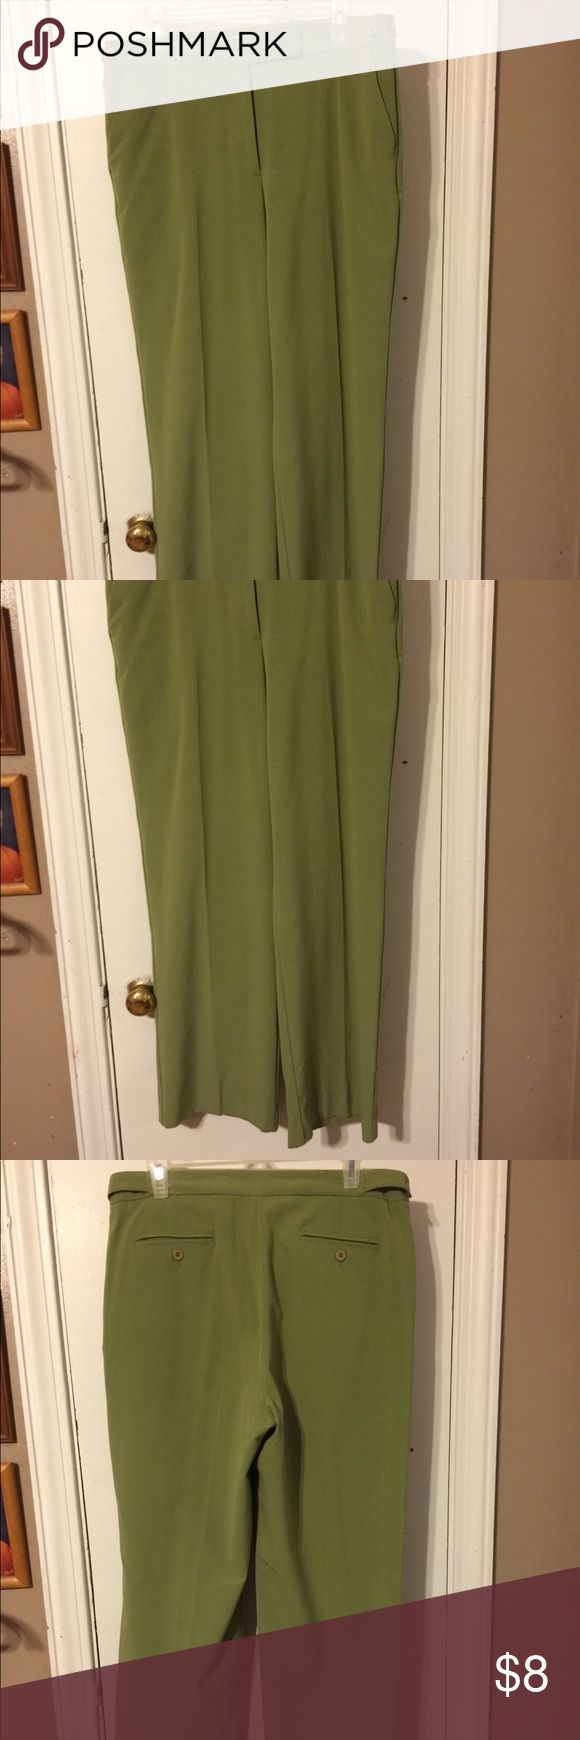 Pants by Emma James size 12 Green dress pants adjustable waist polyester rayon spandex in very good condition Emma James Pants Trousers